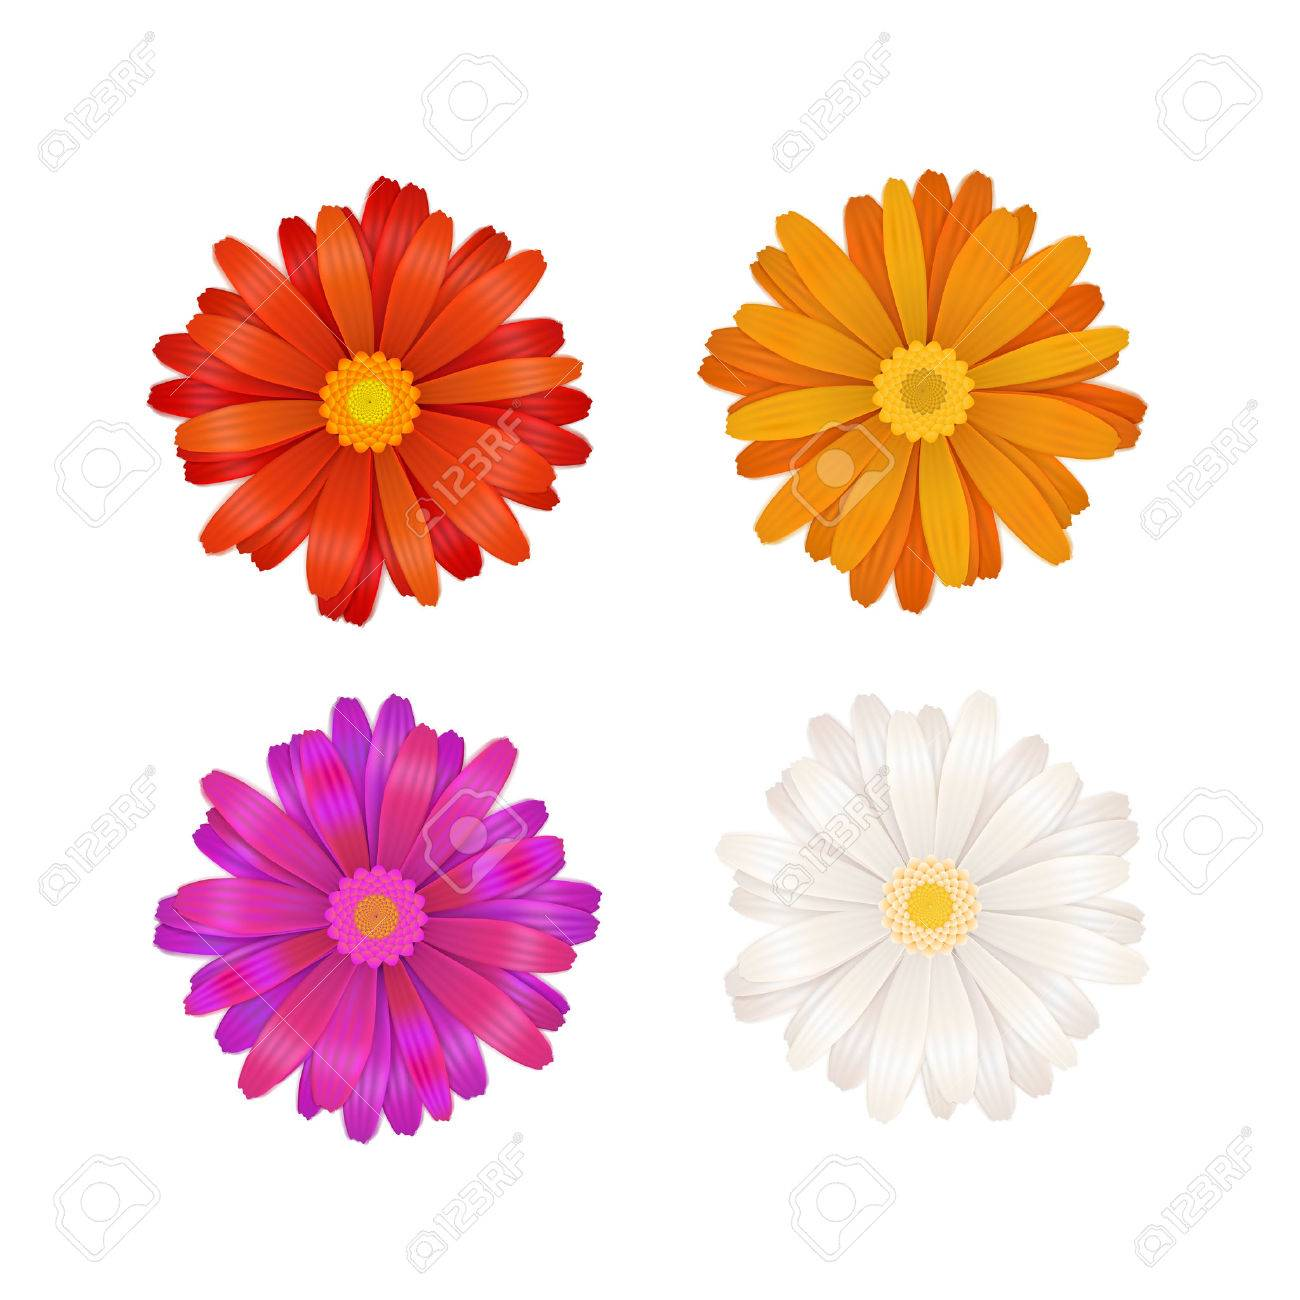 Set of colourful gerbera flowers isolated on white - 54228987